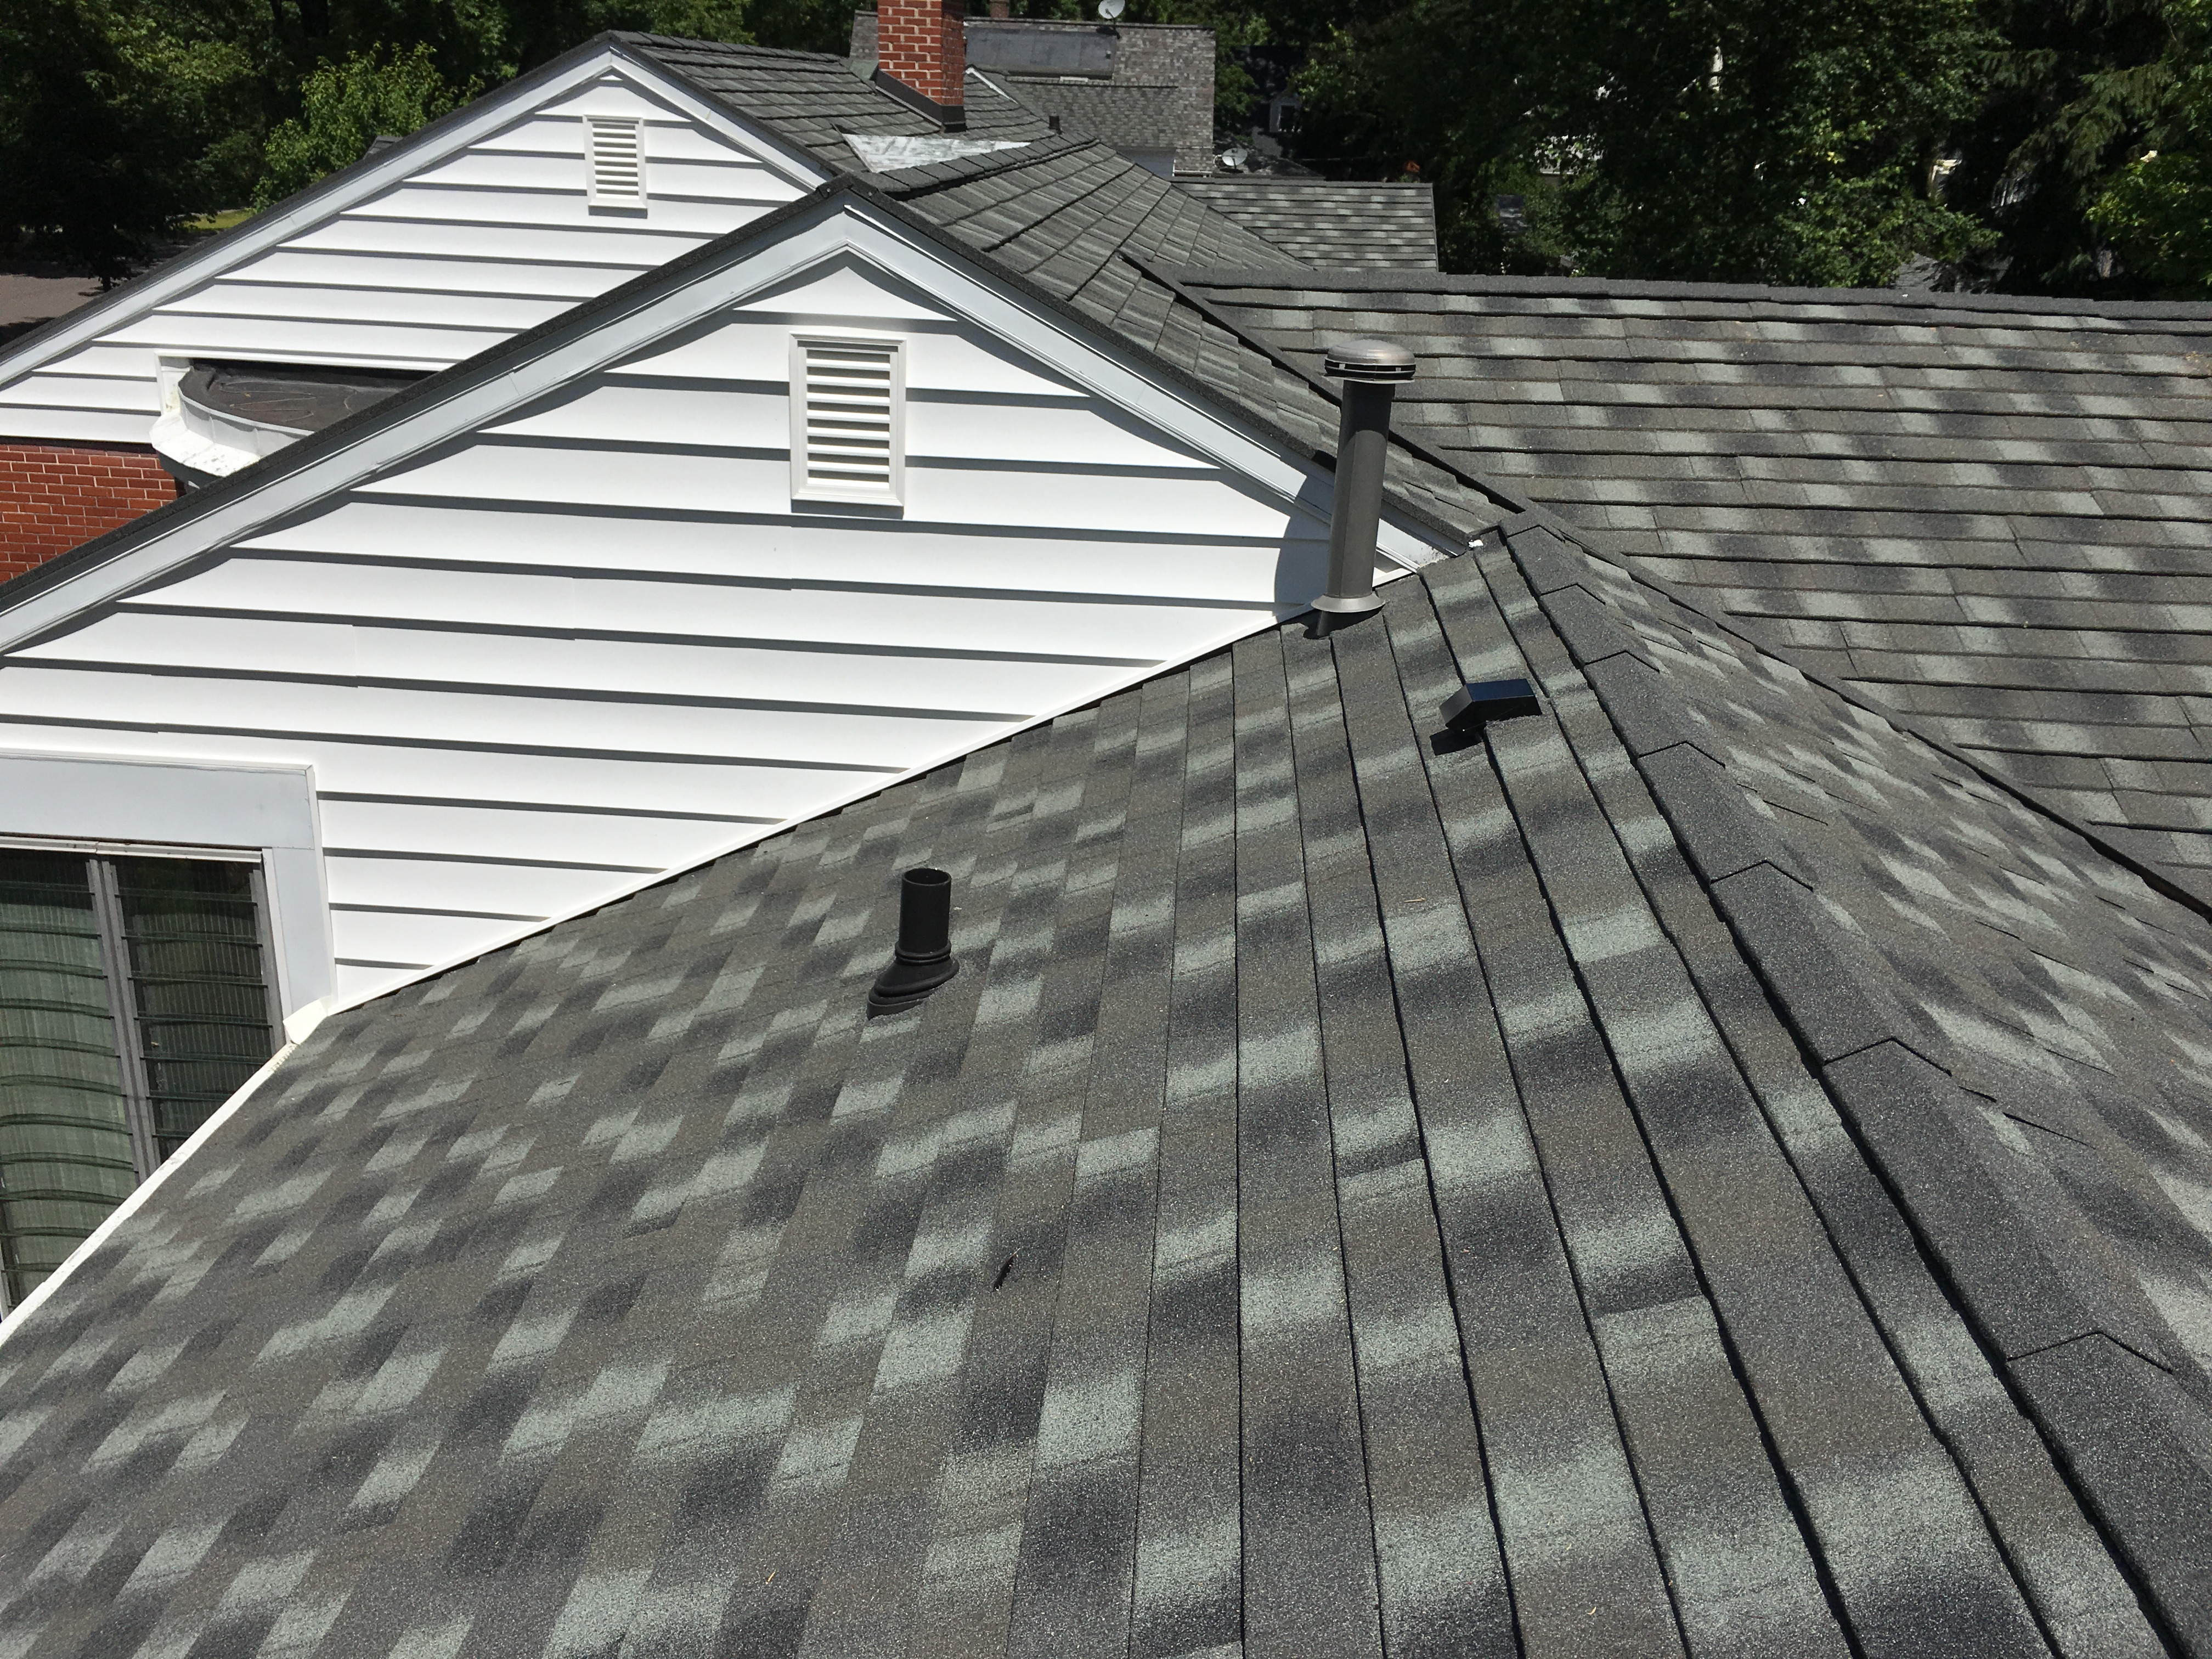 2 & Stone Coated Steel - Decra Shingle XD Roof Replacement In Wausau WI ...